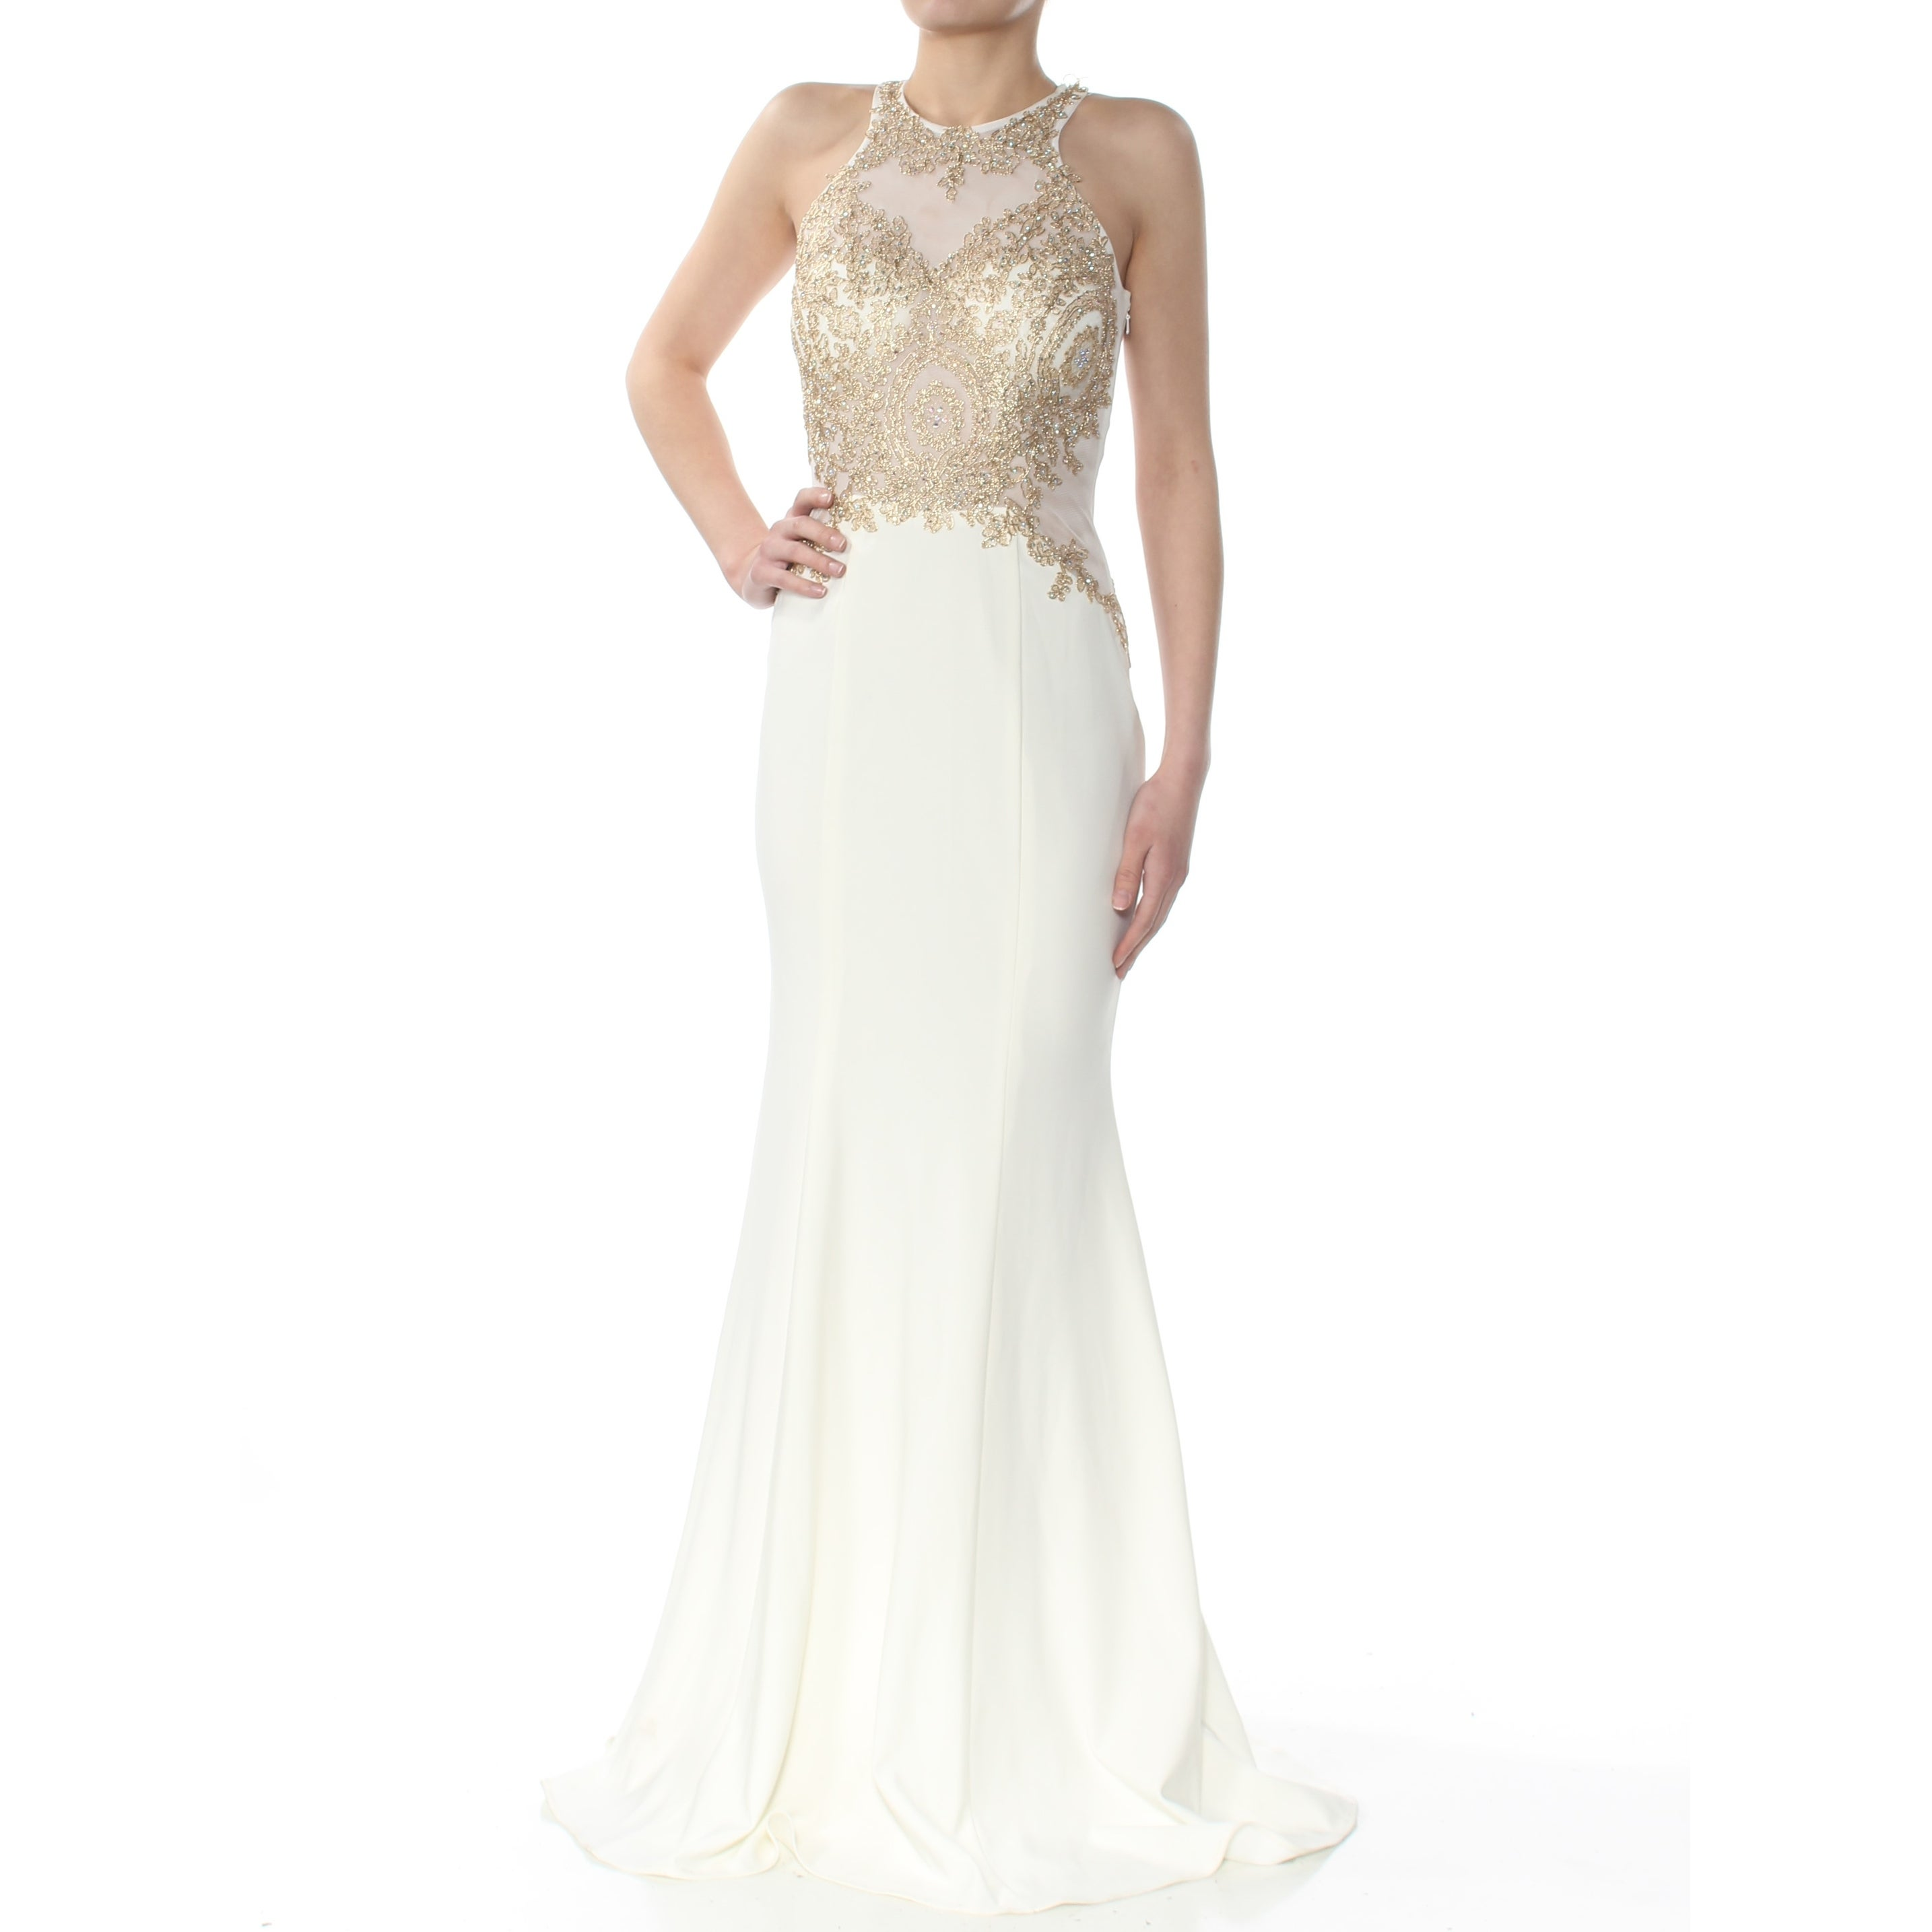 91436c1ff0e Shop XSCAPE Womens Ivory Beaded   Embroidered Gown Sleeveless Jewel Neck  Full-Length Sheath Formal Dress Size  2 - On Sale - Free Shipping Today -  Overstock ...